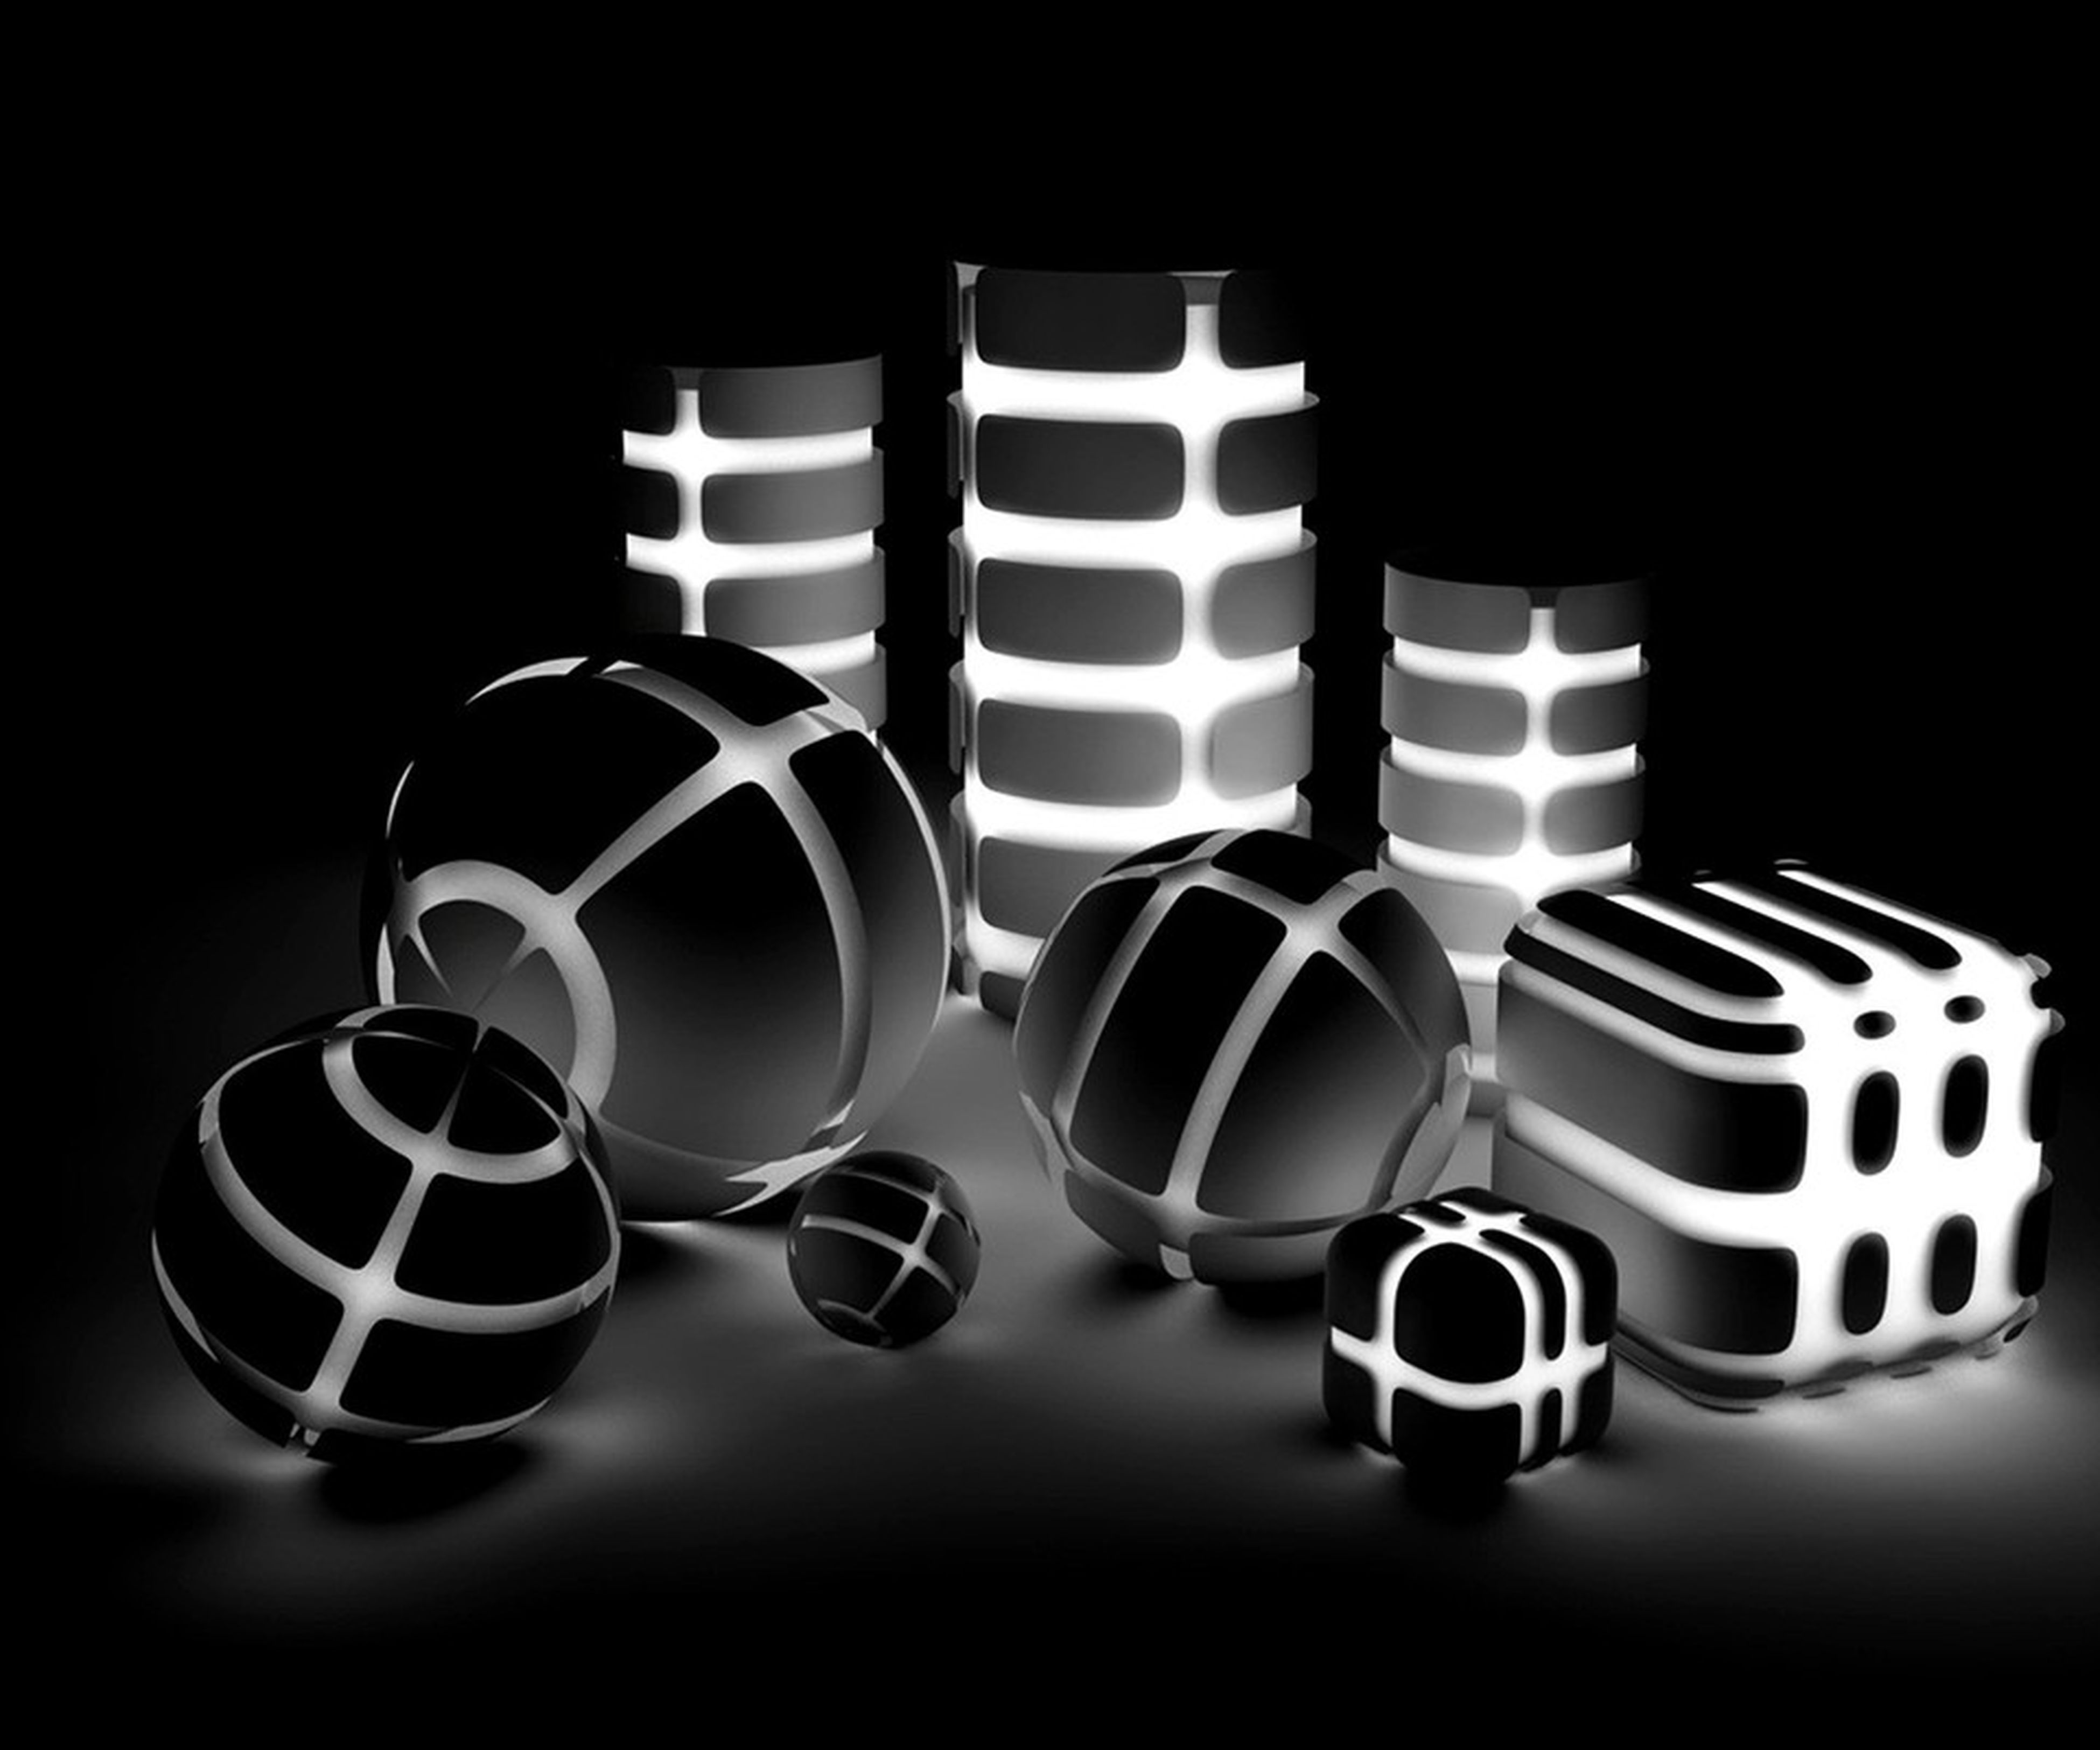 indoors, still life, large group of objects, in a row, close-up, arrangement, repetition, order, studio shot, circle, pattern, side by side, black background, no people, metal, table, shape, illuminated, lighting equipment, abundance